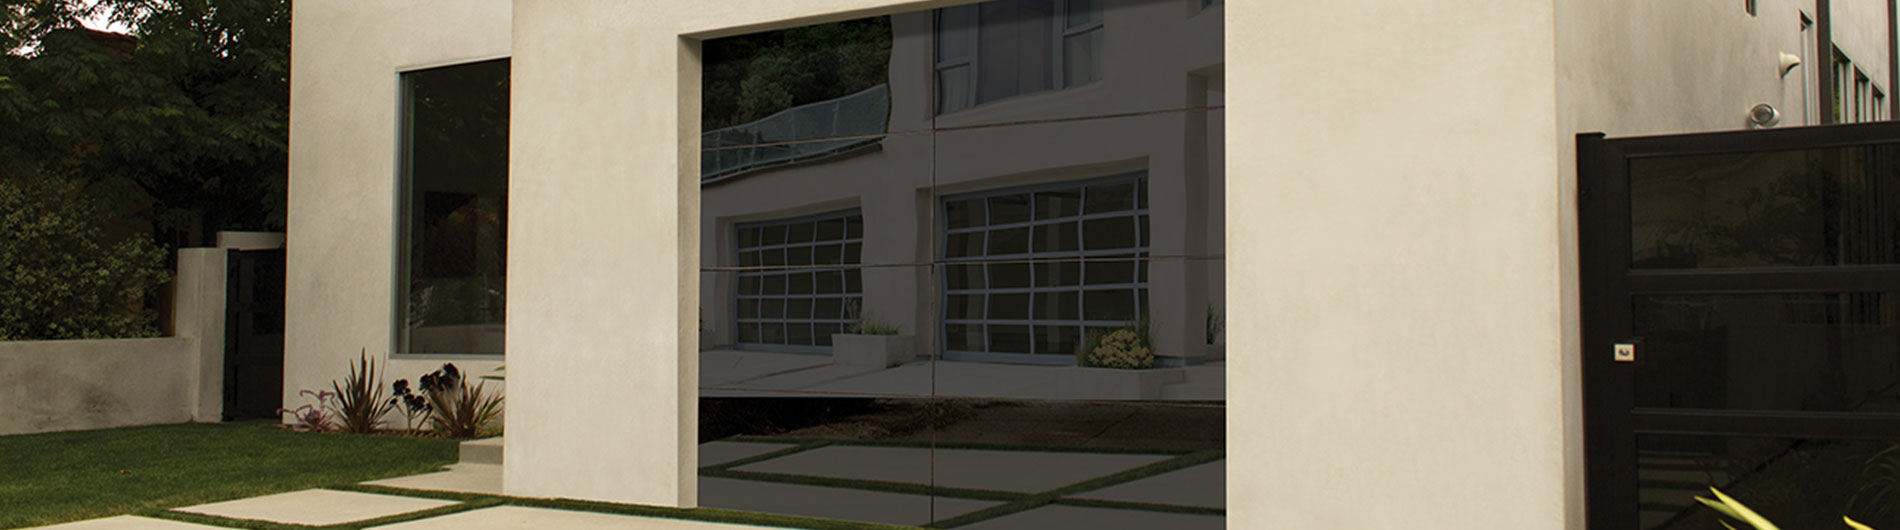 Aluminum Glass Garage Doors 8450 From Precision Door & Aluminum Glass Garage Doors 8450 From Precision Door - Precision ...